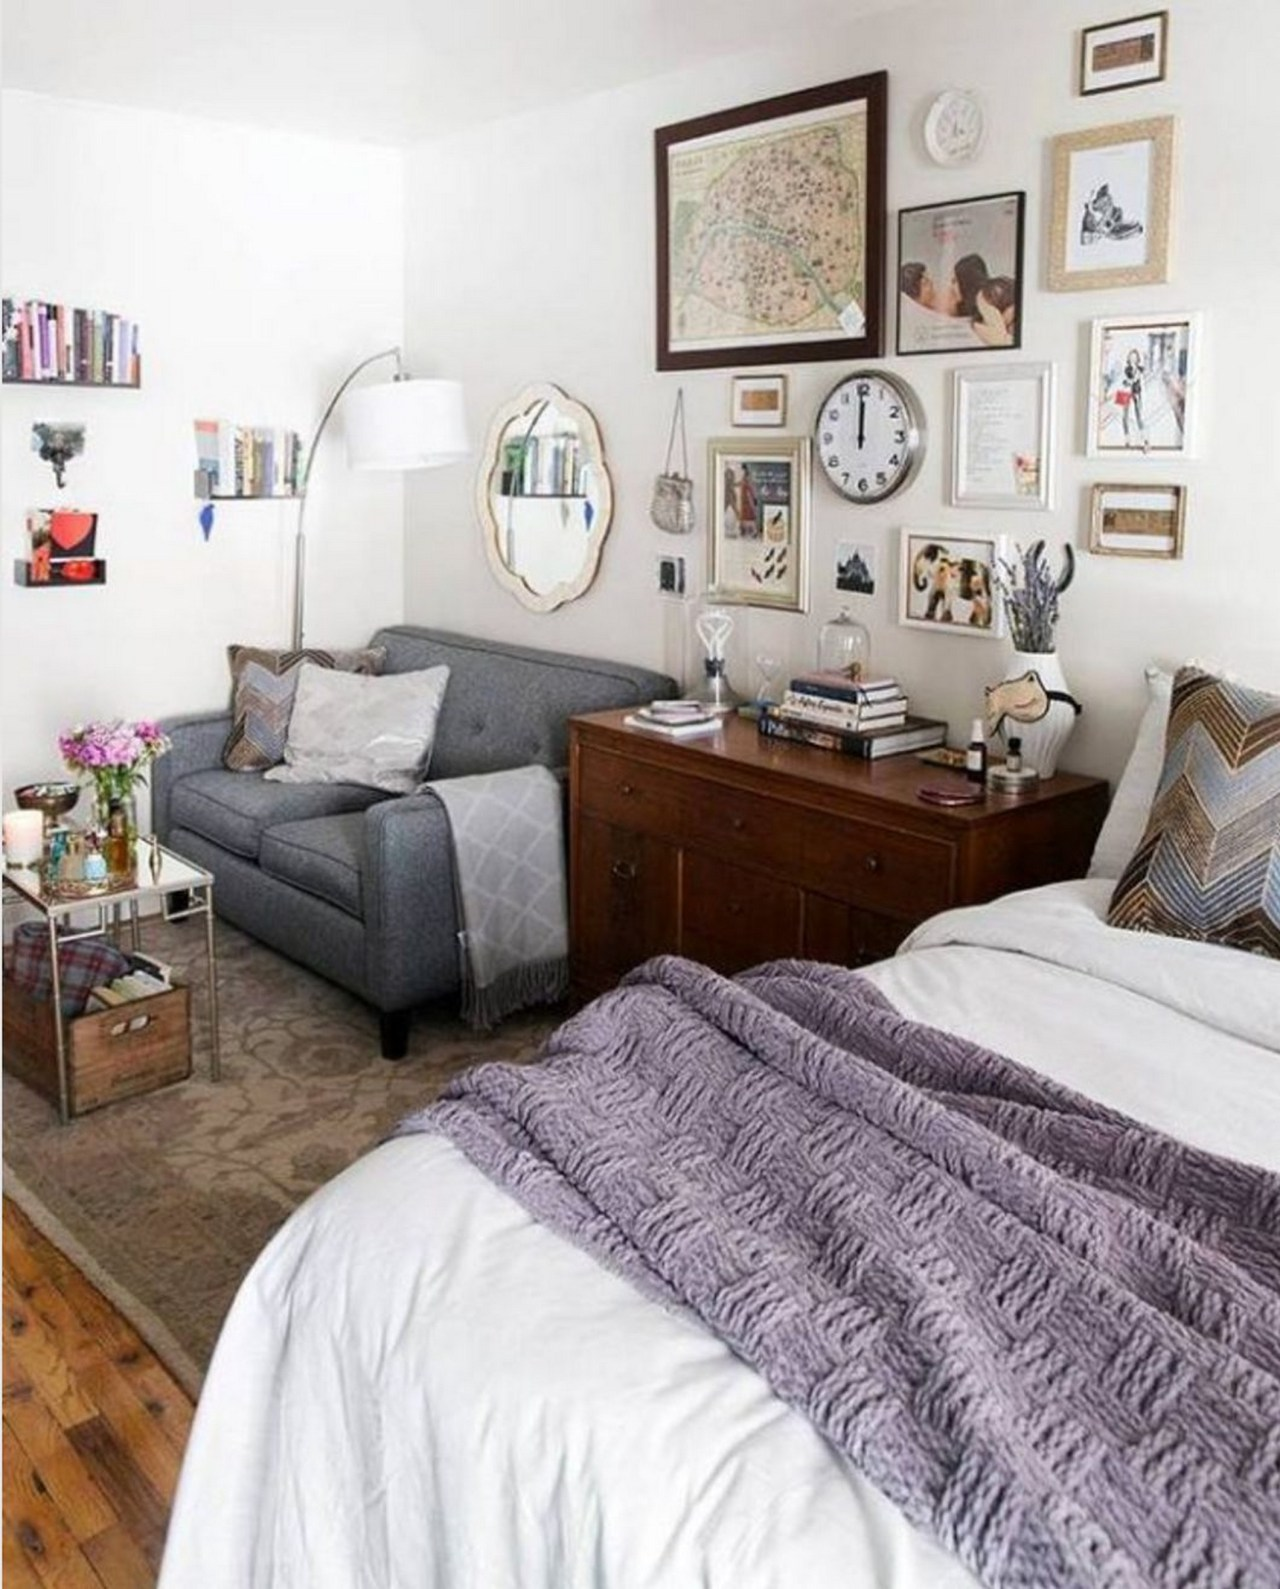 20 Perfect Small Apartment Decorating on a Budget - Decor ... on Apartment Decor Ideas On A Budget  id=68576